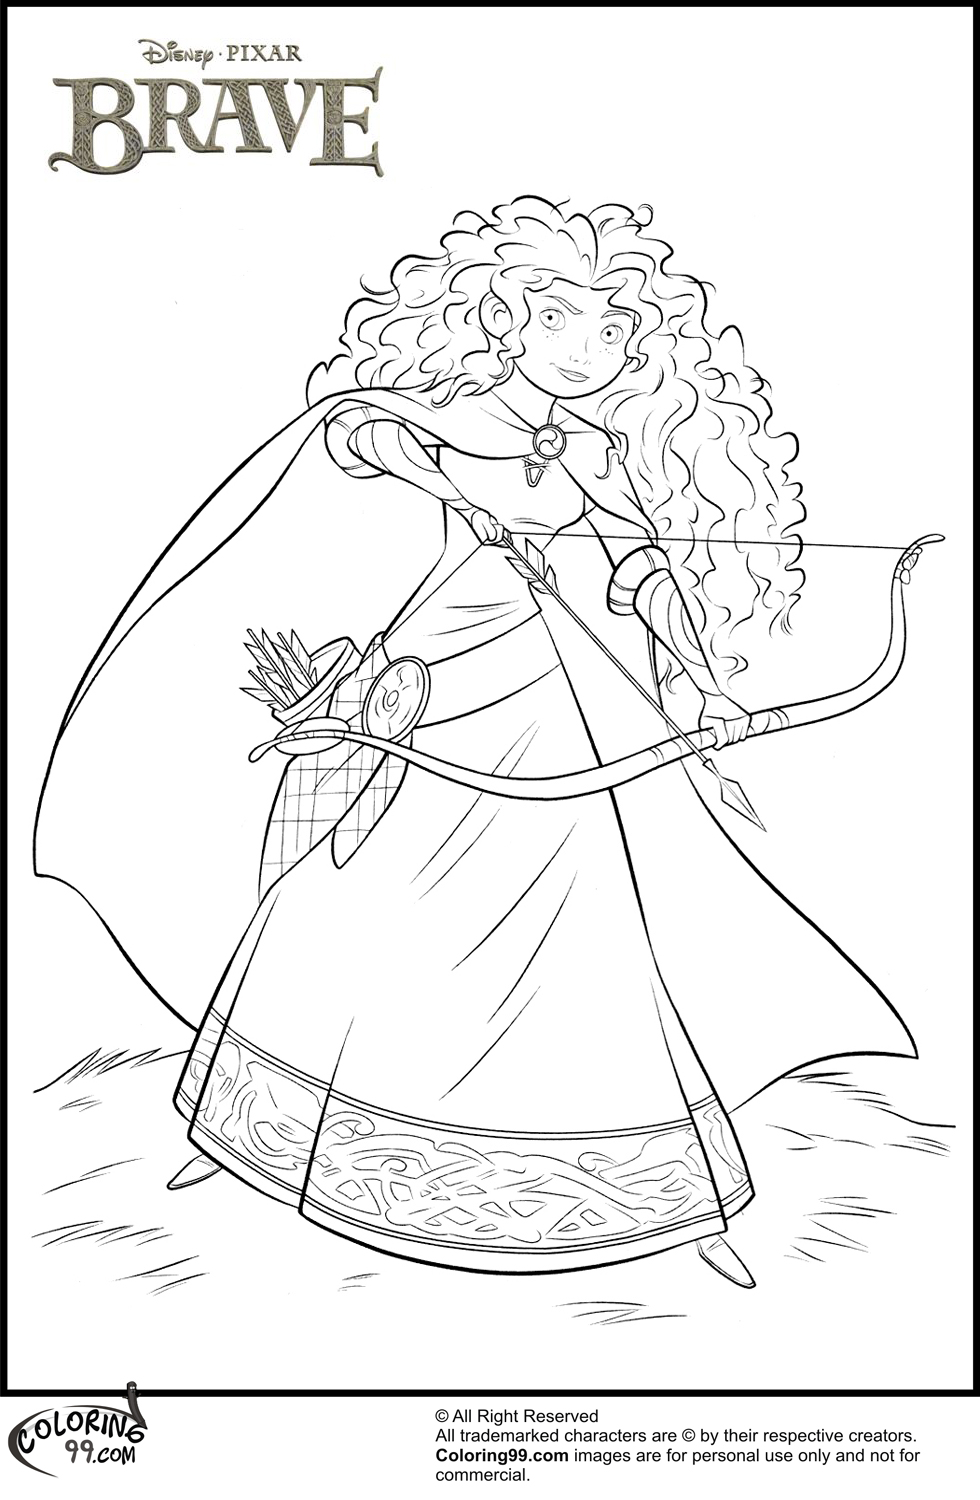 coloring pages disney princess - november 2013 team colors